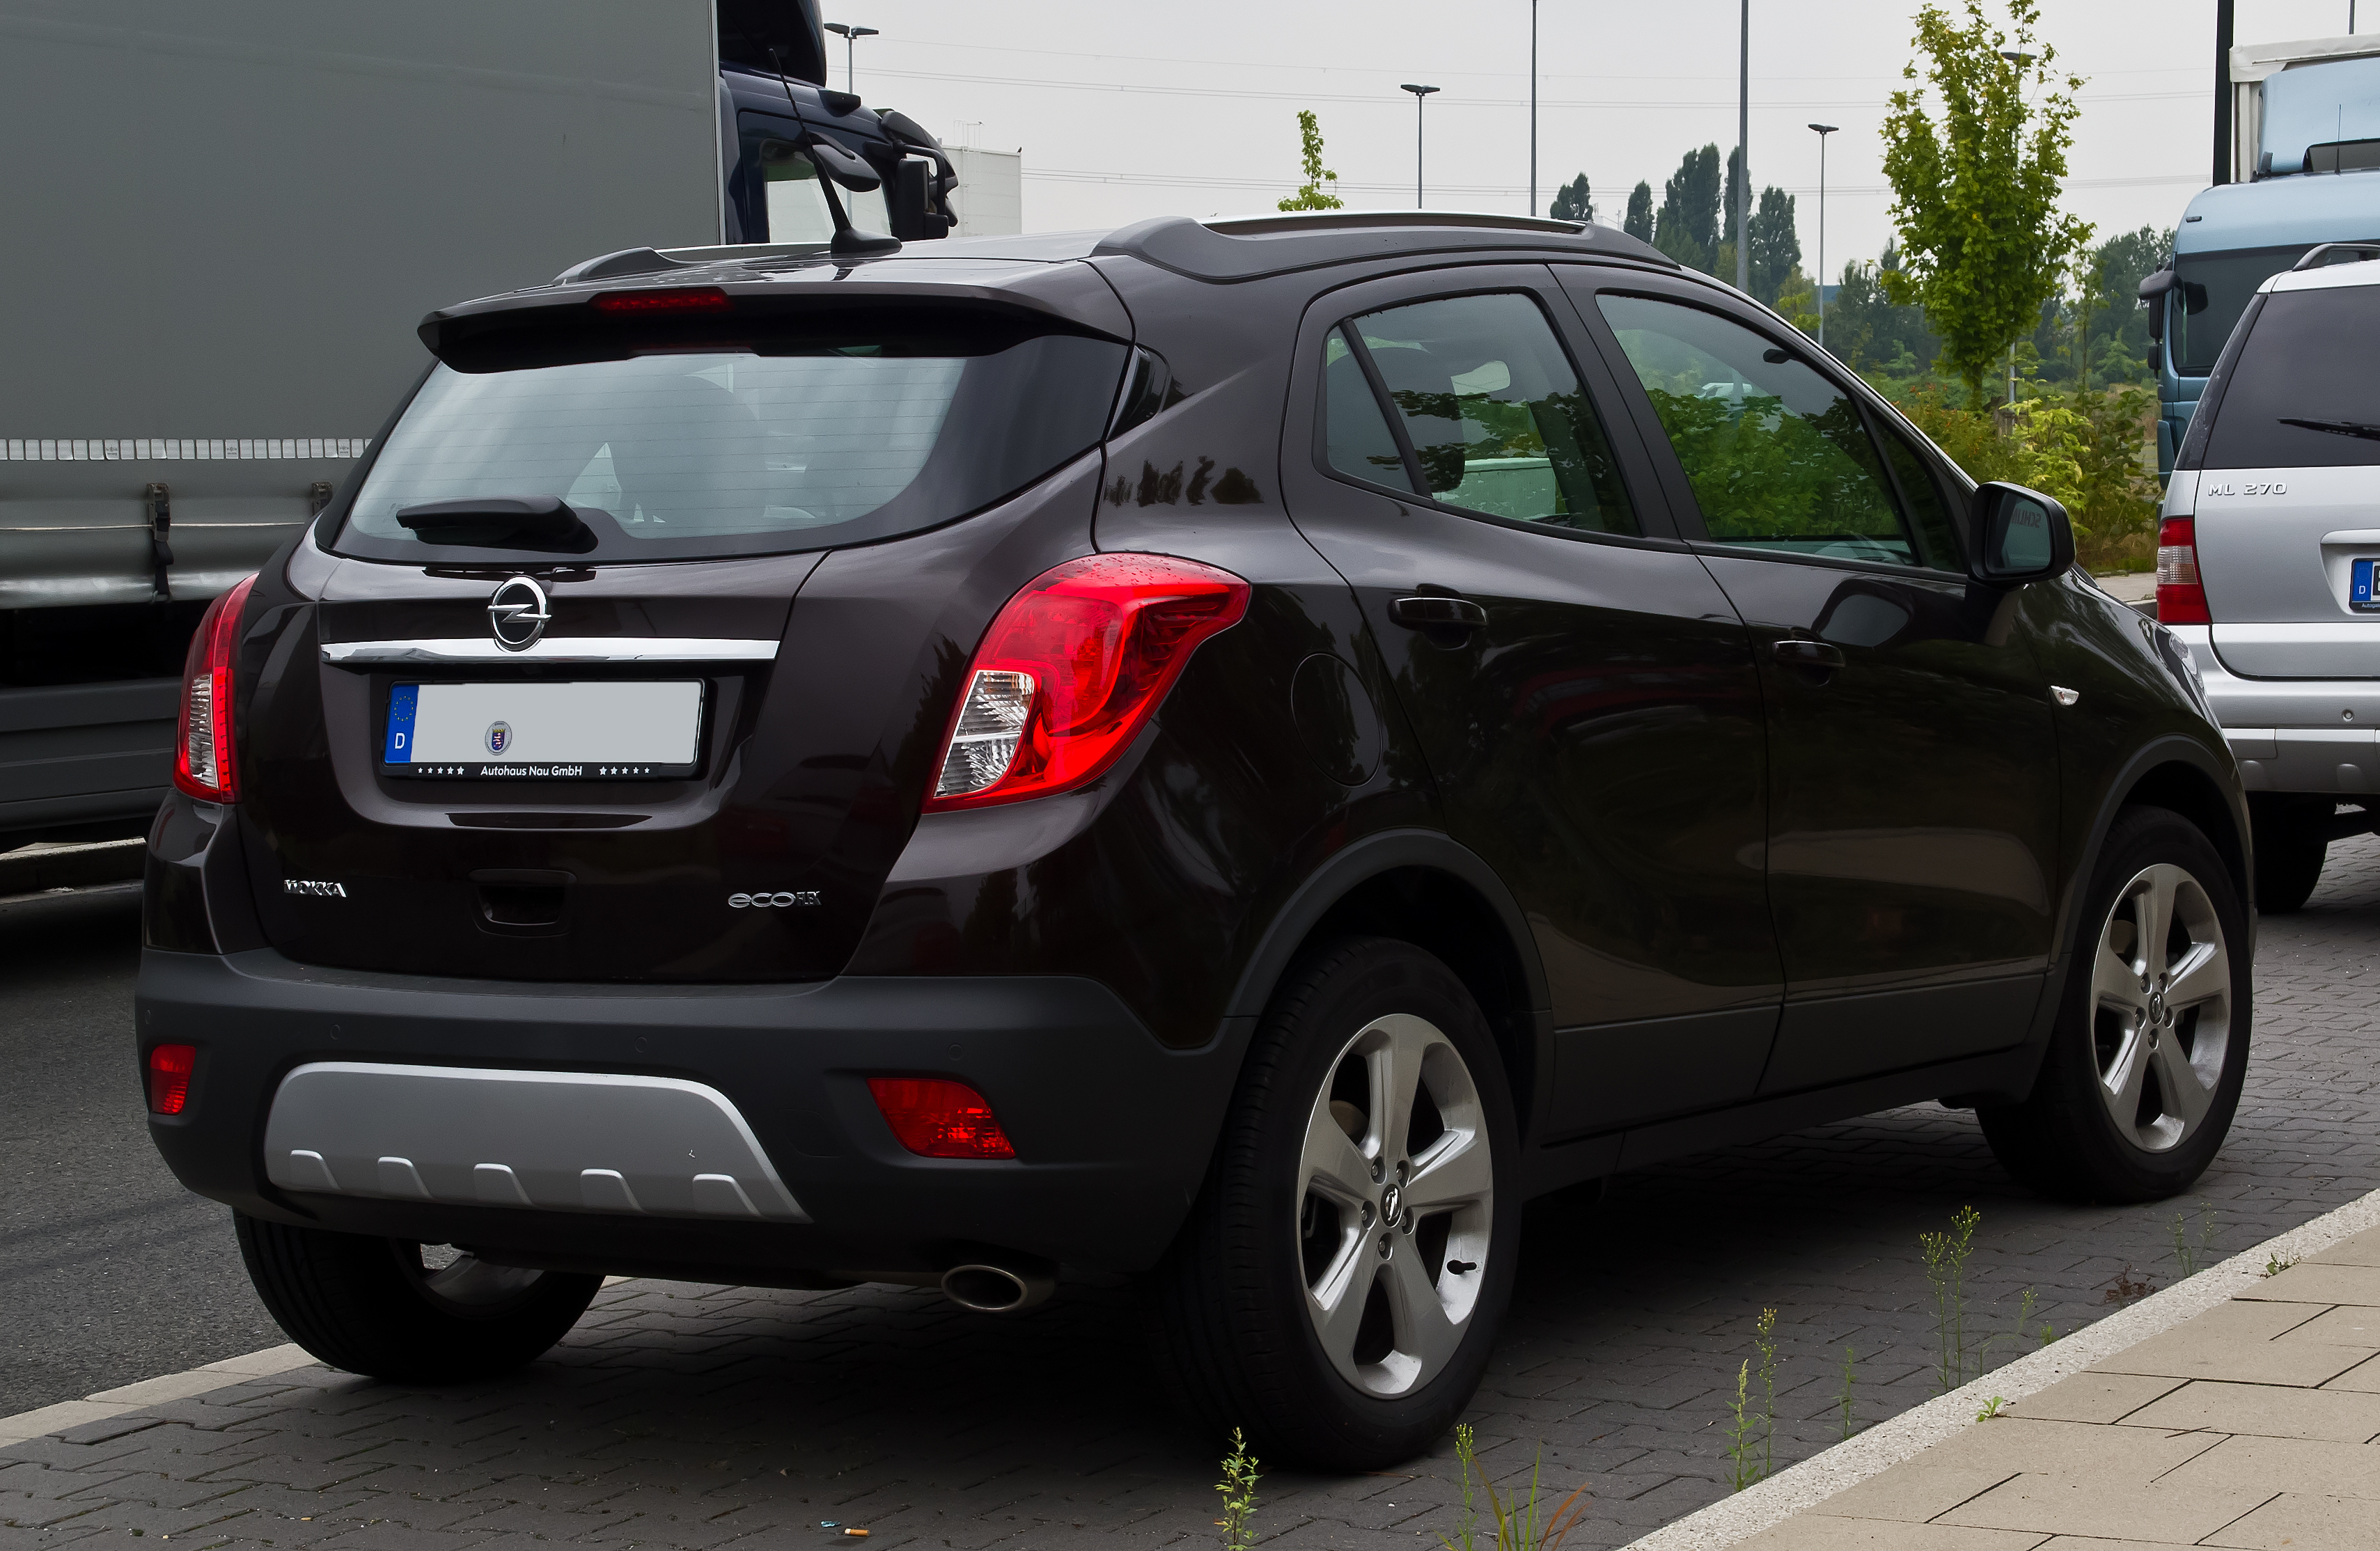 file opel mokka ecoflex edition heckansicht 25 august 2013 d wikimedia commons. Black Bedroom Furniture Sets. Home Design Ideas